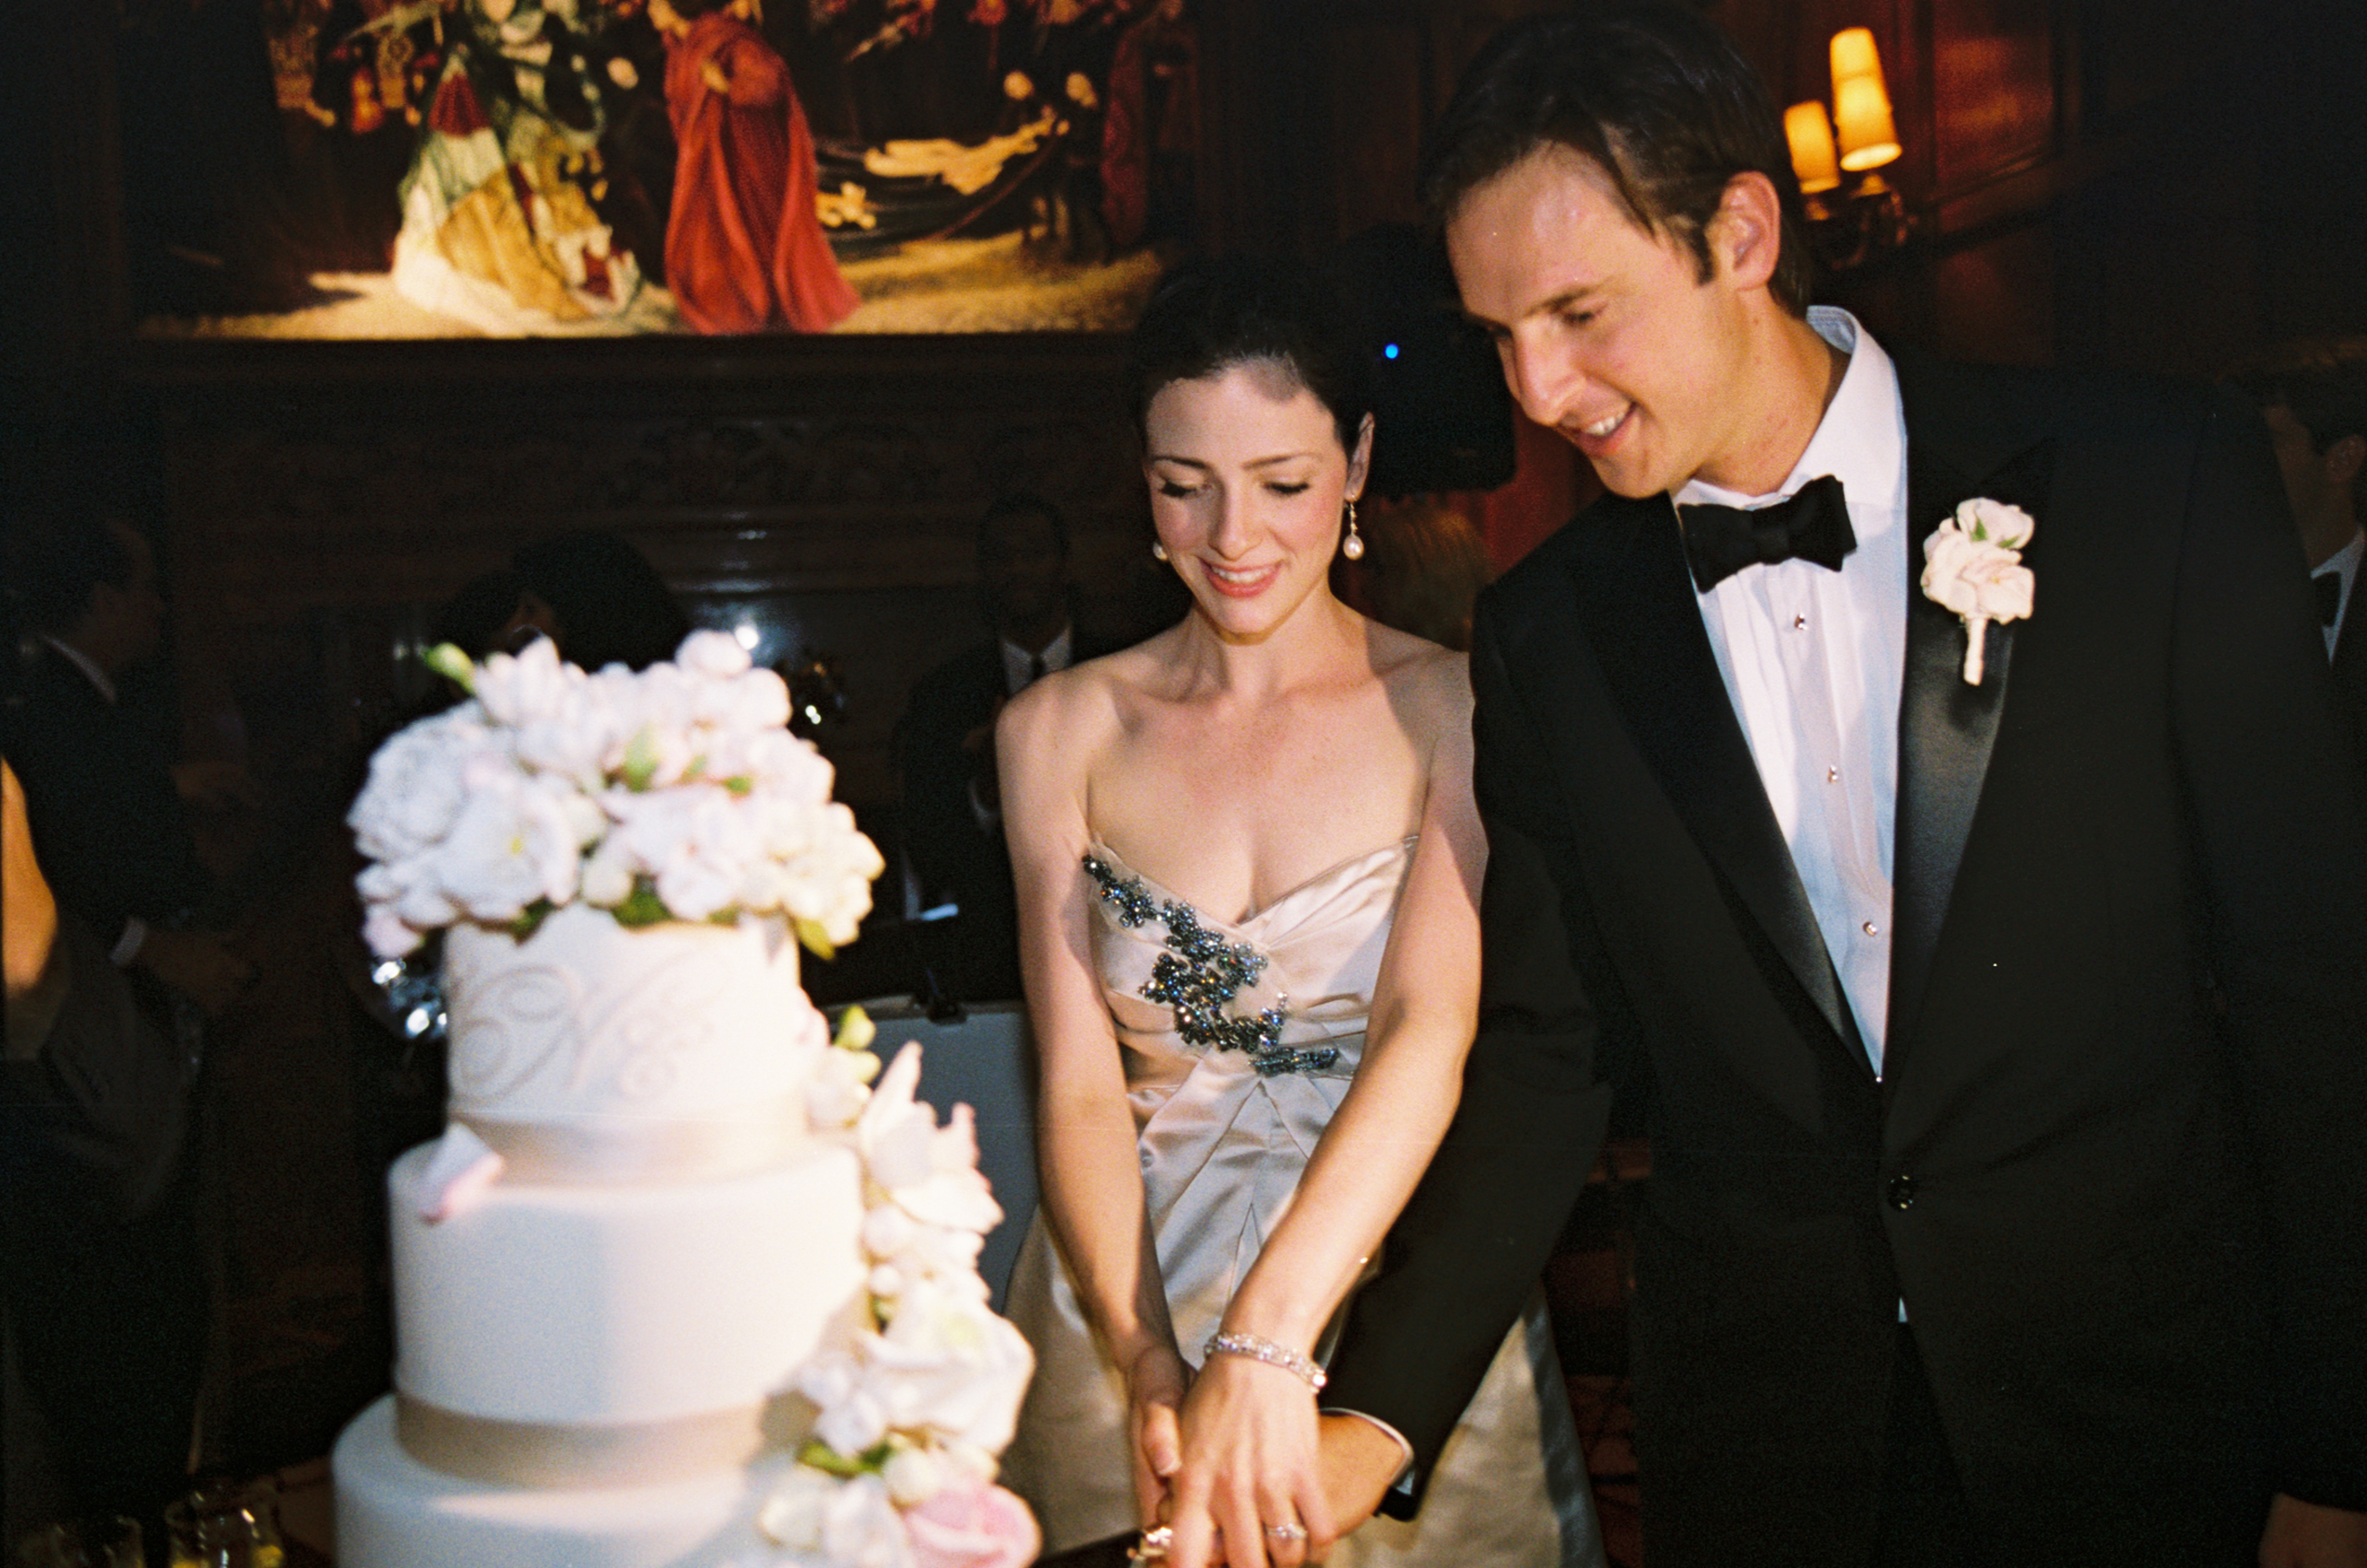 tradition behind cutting the wedding cake 10 traditions to not skip for your wedding amanda 21219